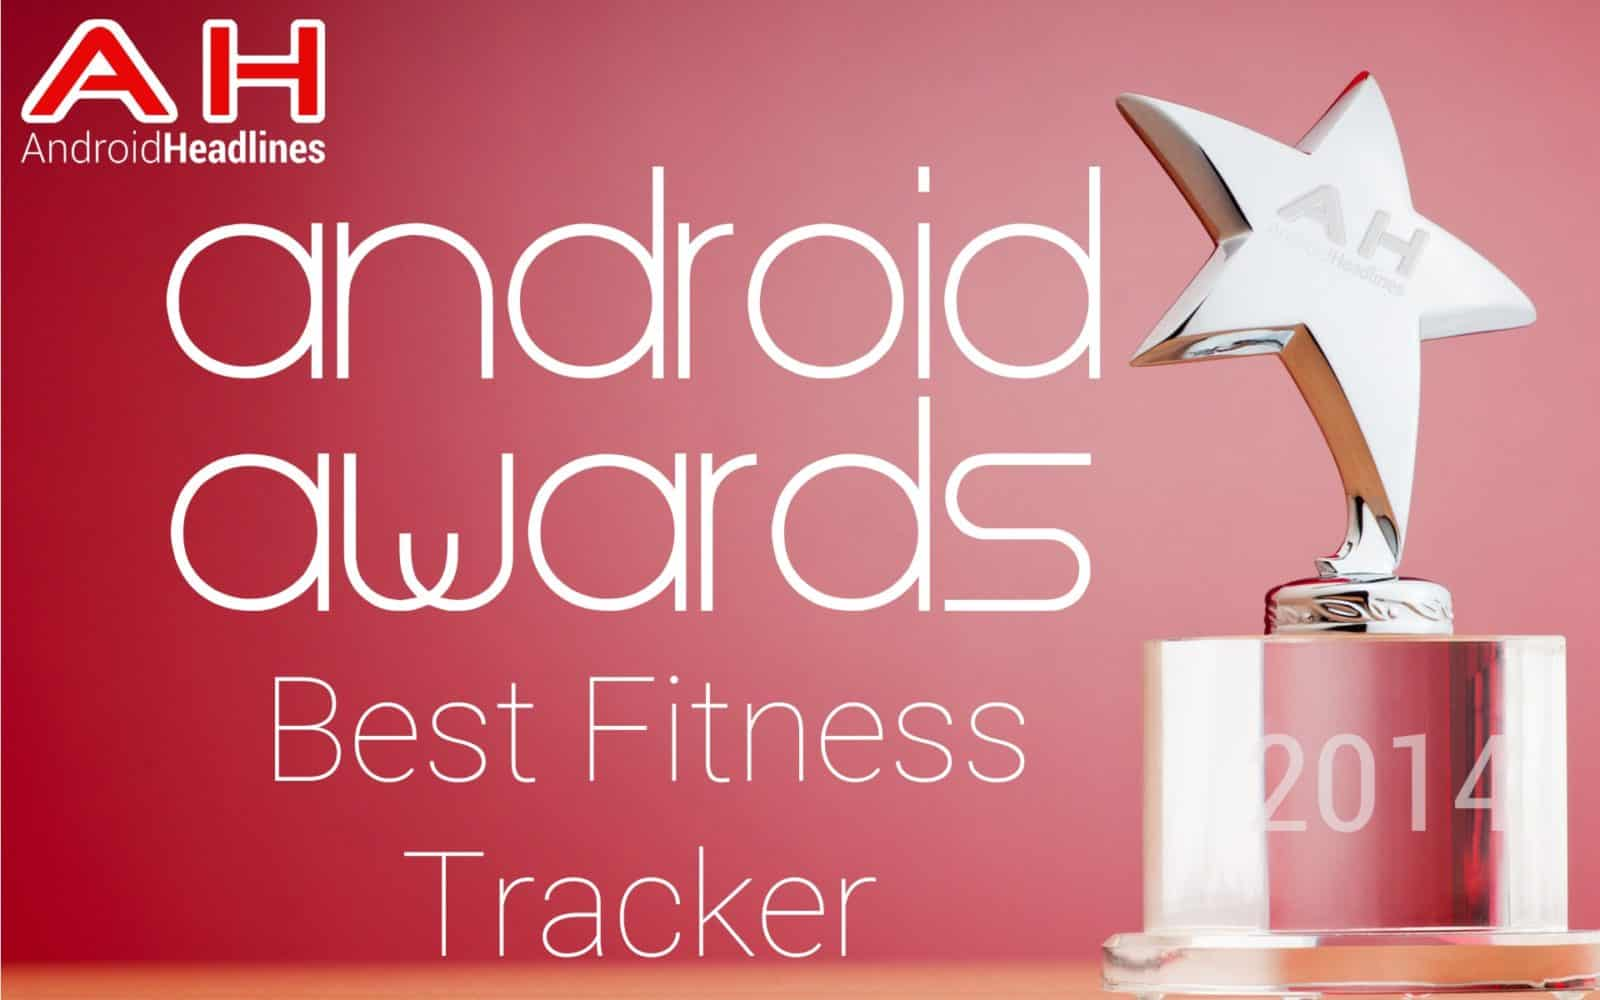 AH Awards 2014 - Best Android Fitness Tracker of the year